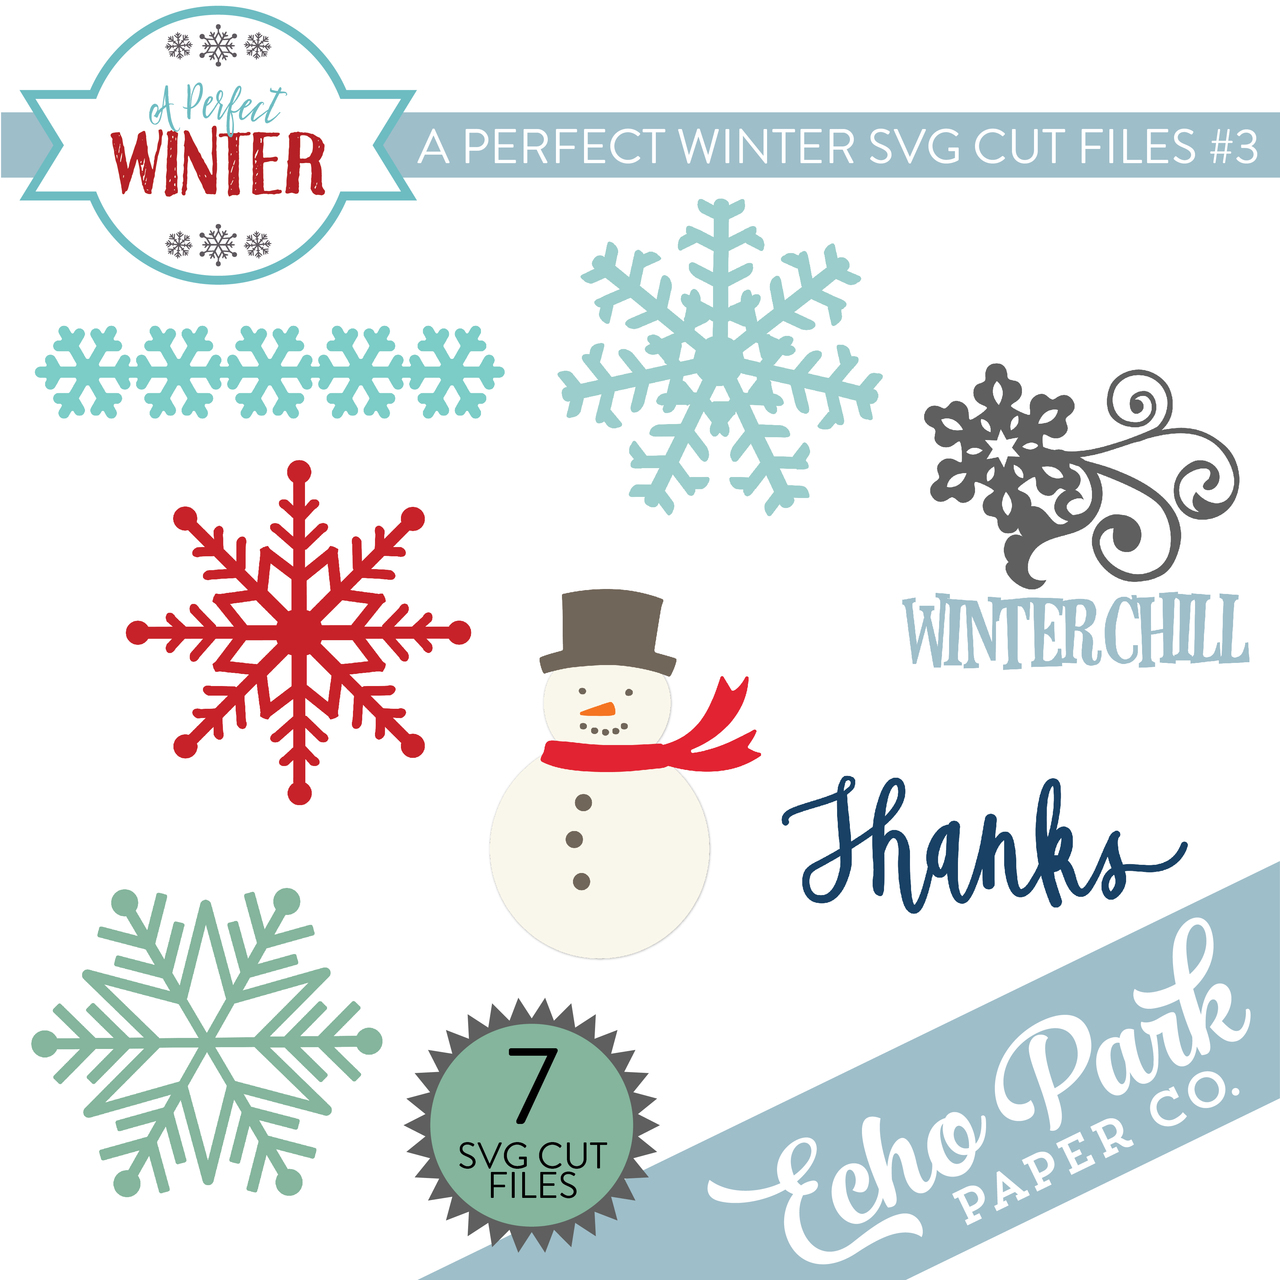 A Perfect Winter SVG Cut Files #3